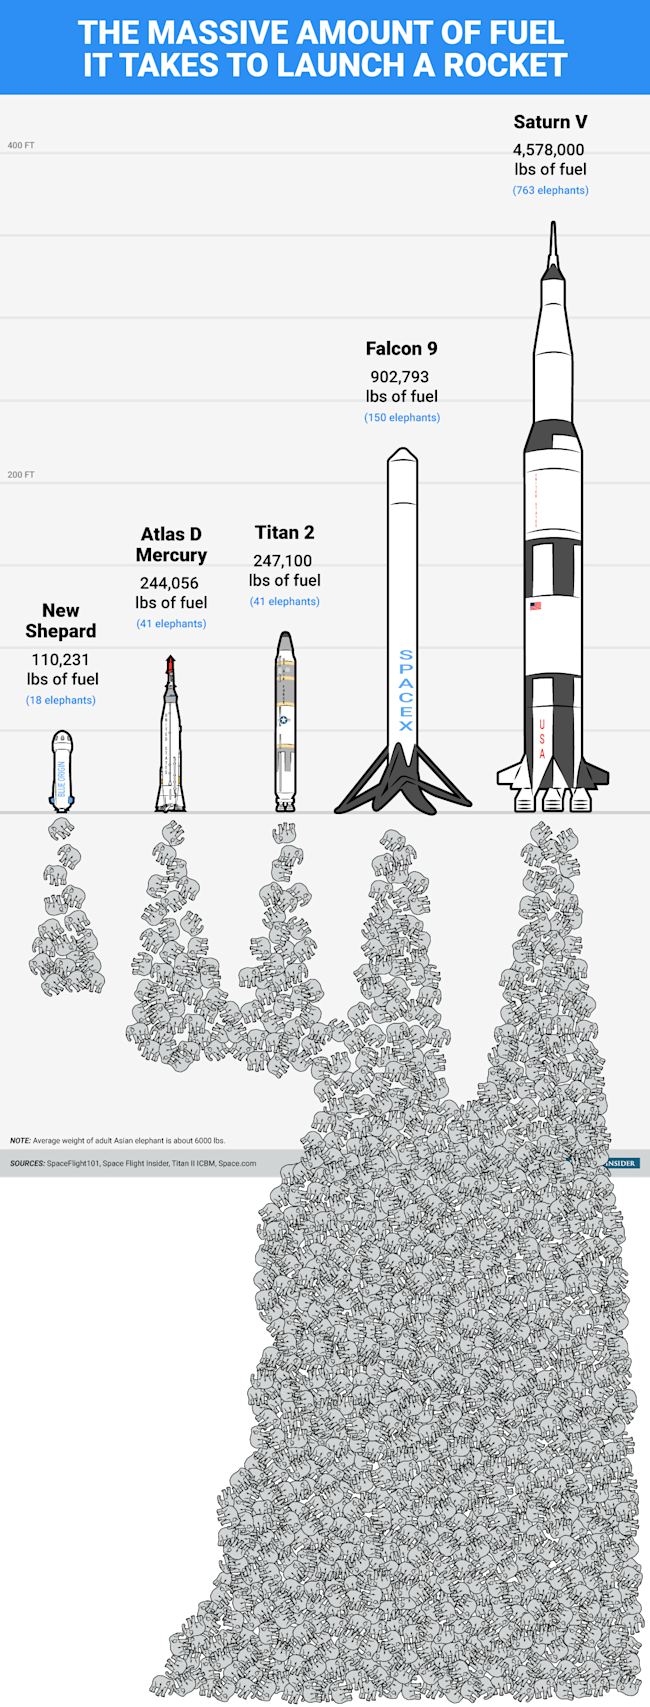 Here S The Massive Amount Of Fuel It Takes To Launch A